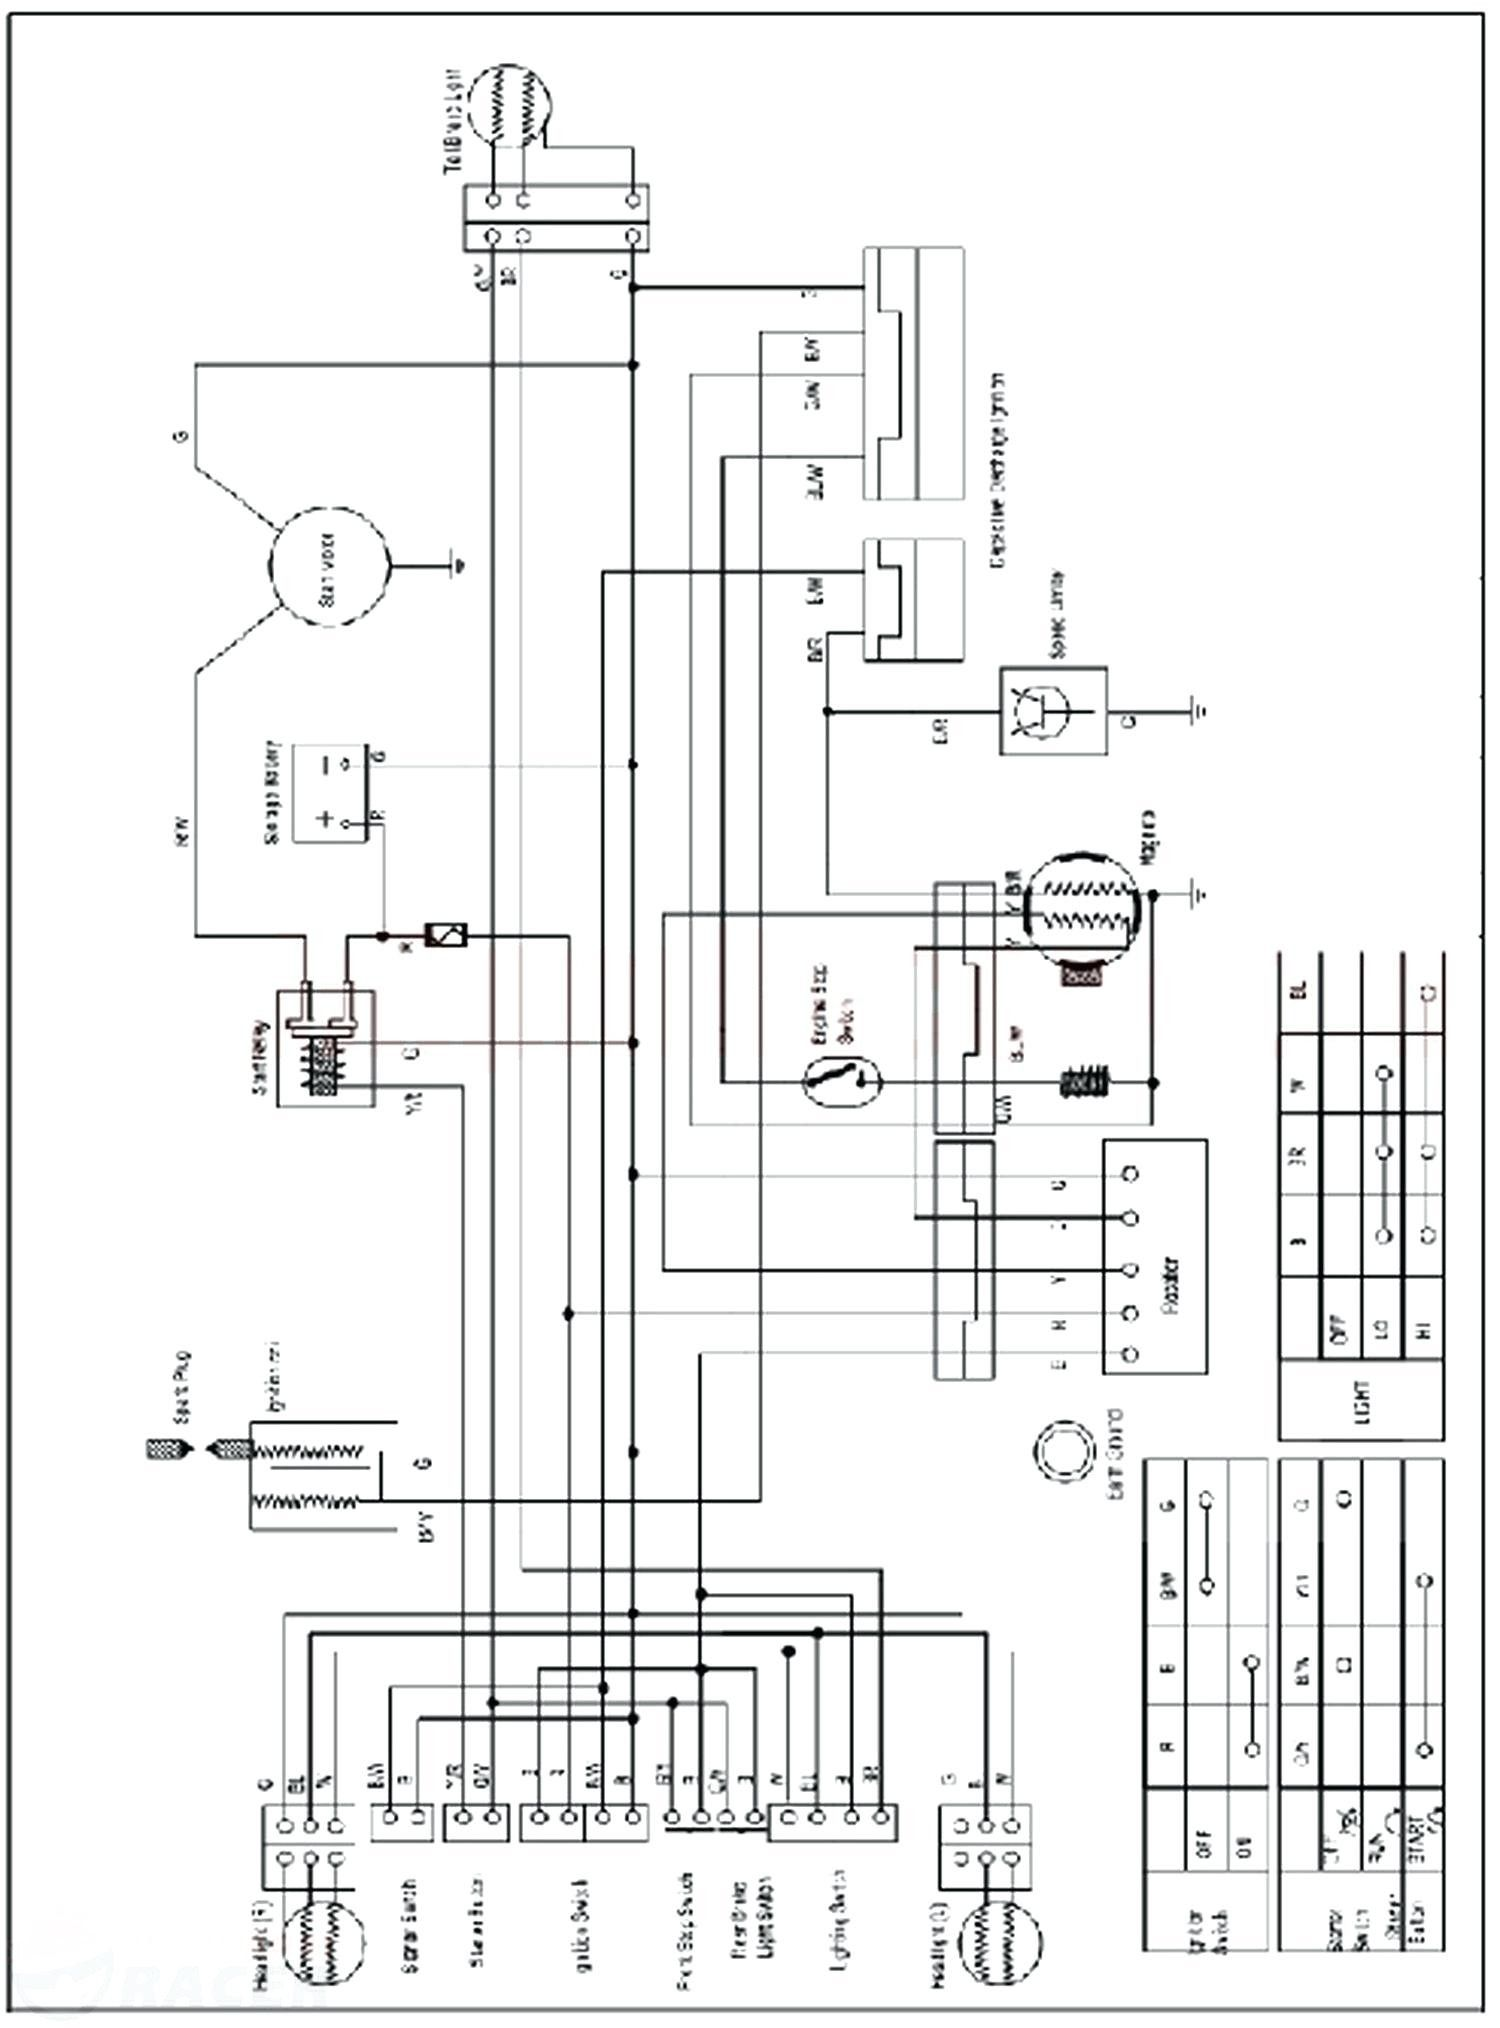 Zongshen Atv Wiring Diagram